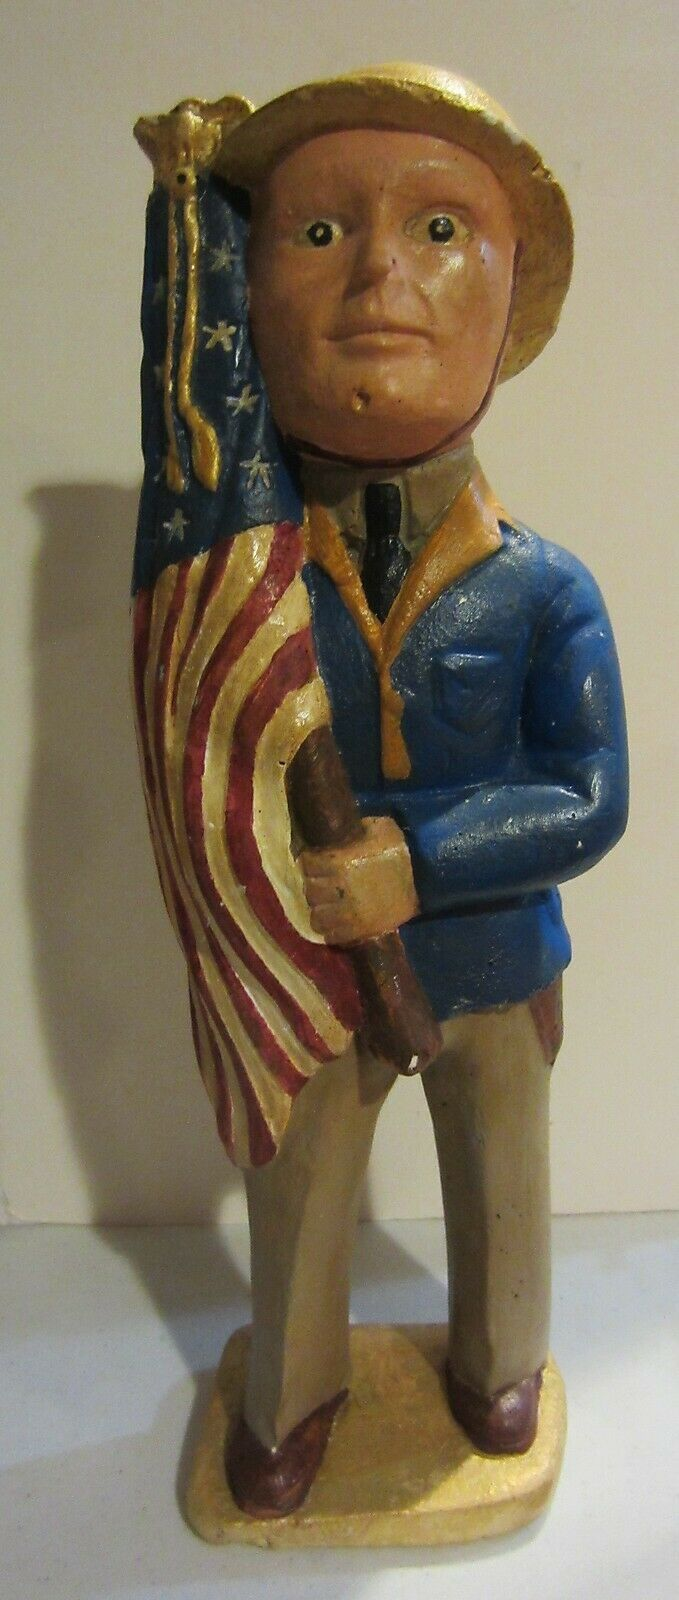 Primary image for Vintage Carnival Chalkware Prize WWI Doughboy Soldier With Flag